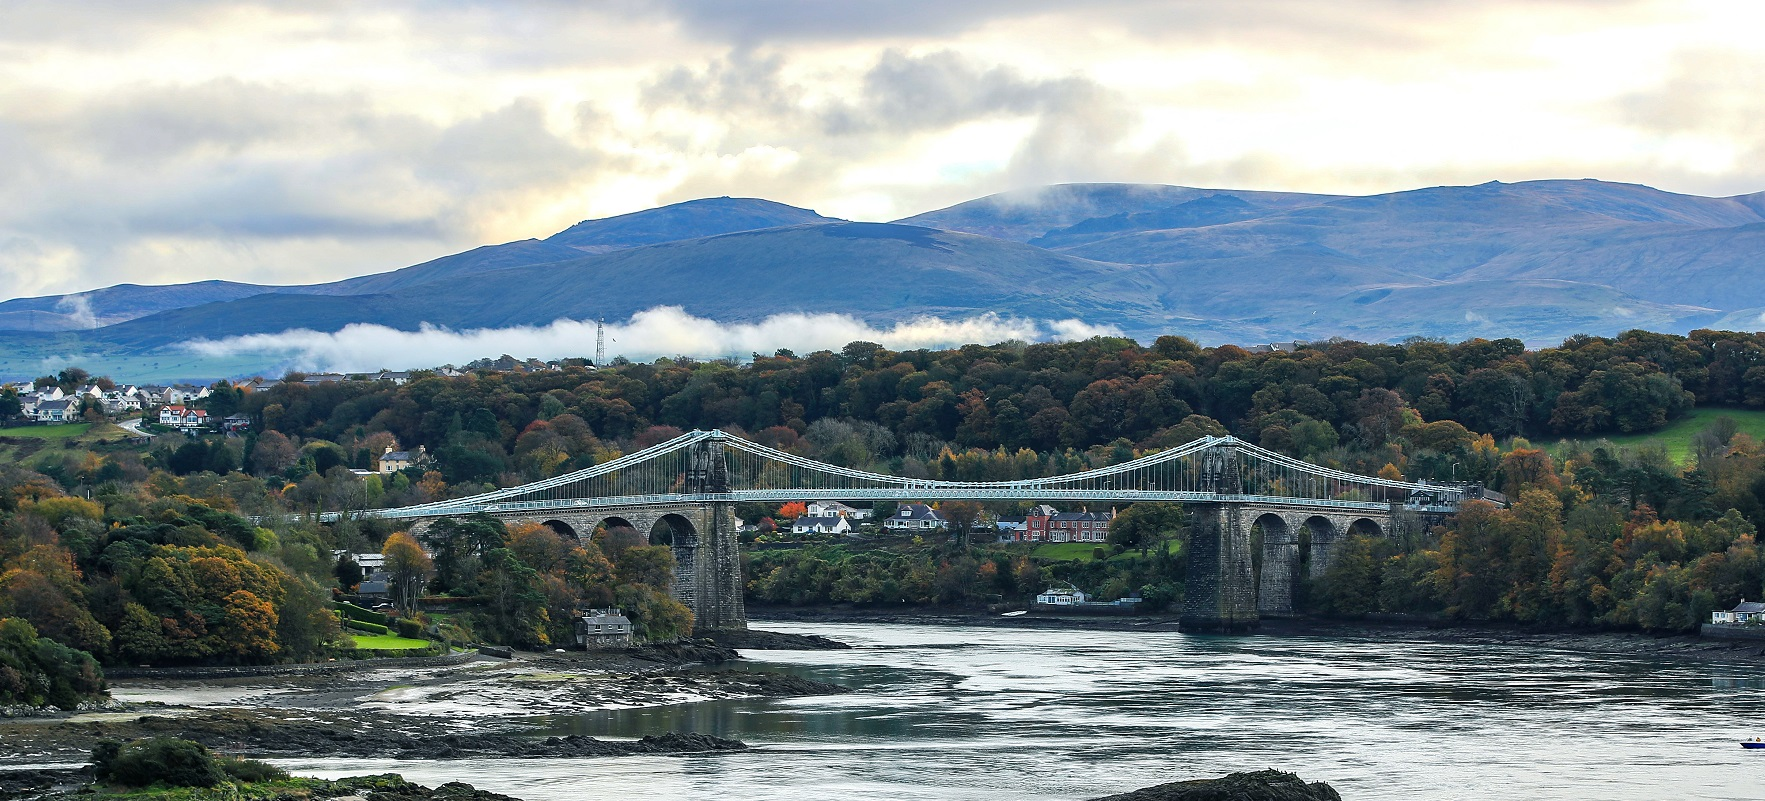 The Menai Bridge in Anglesey, North Wales, where Plaid Cymru launched their General Election campaign